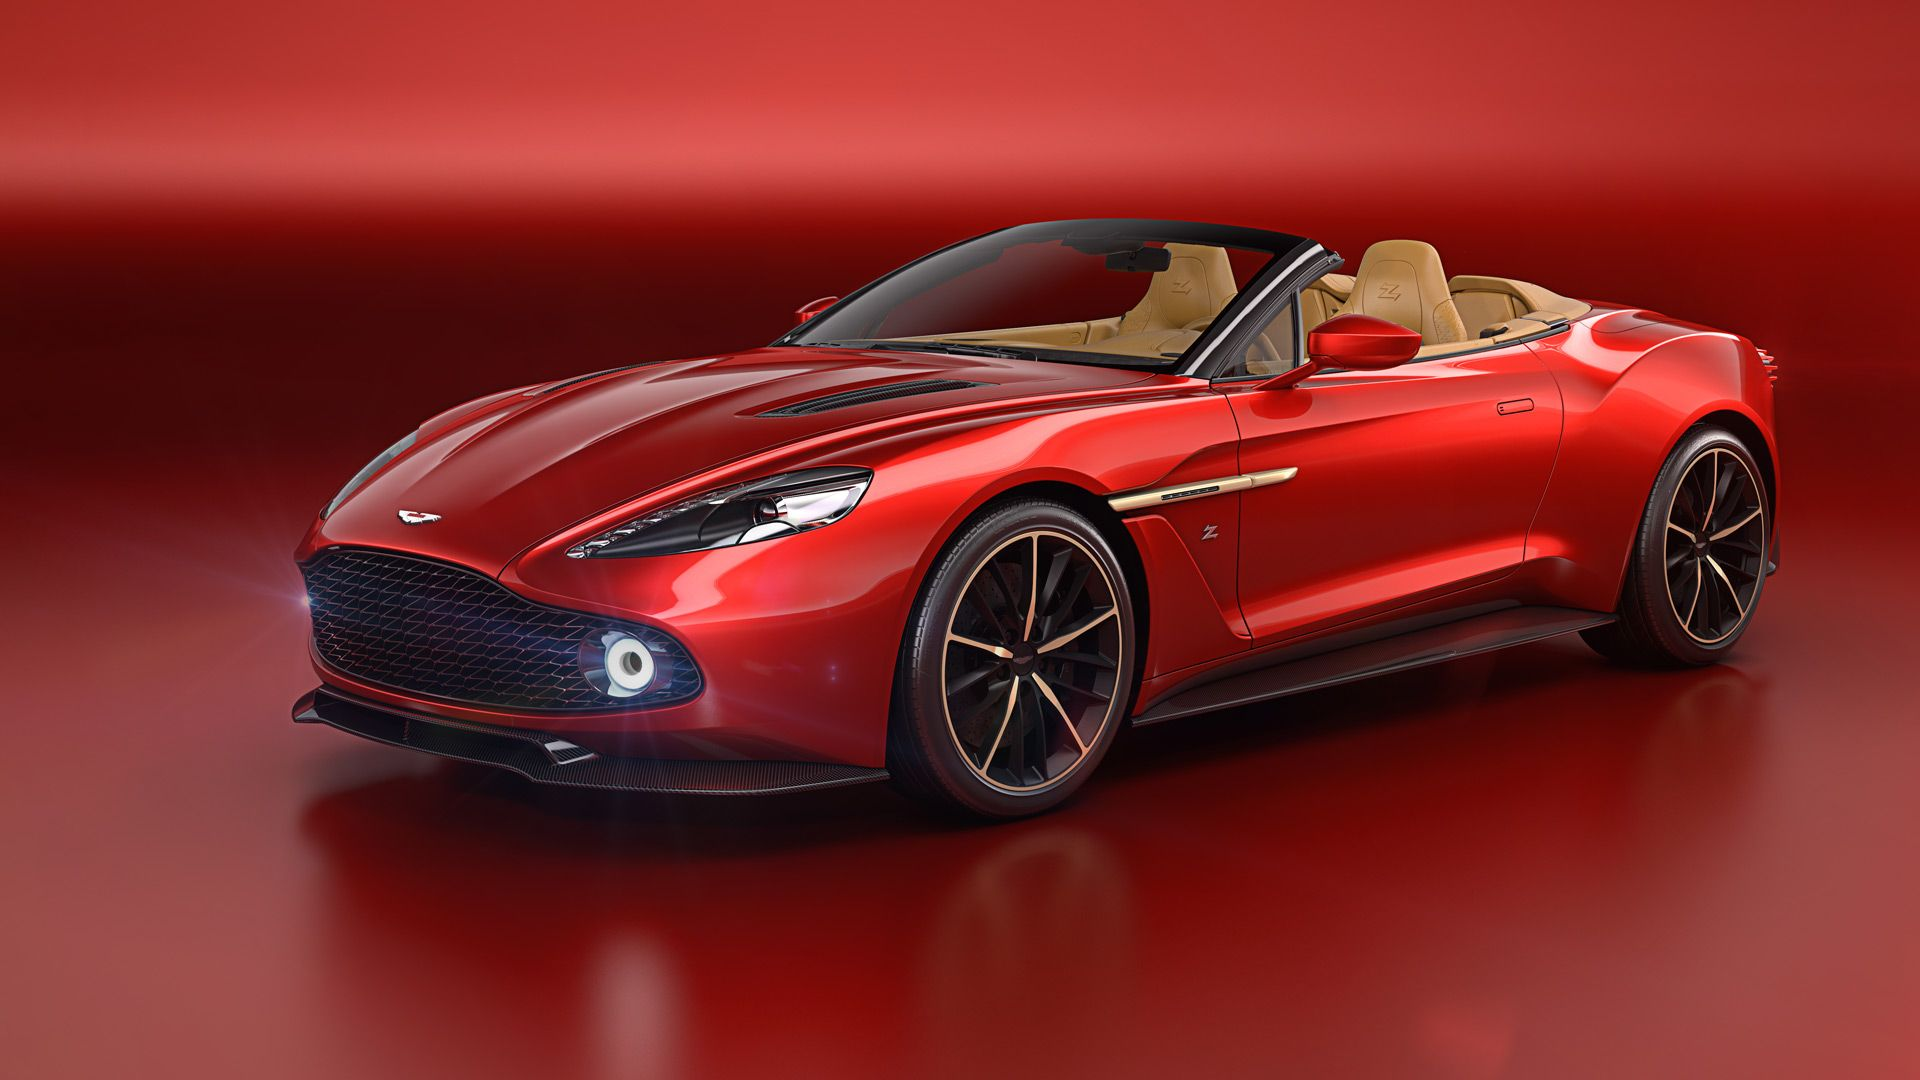 Aston Martin Vanquish Zagato Beautiful Automobiles